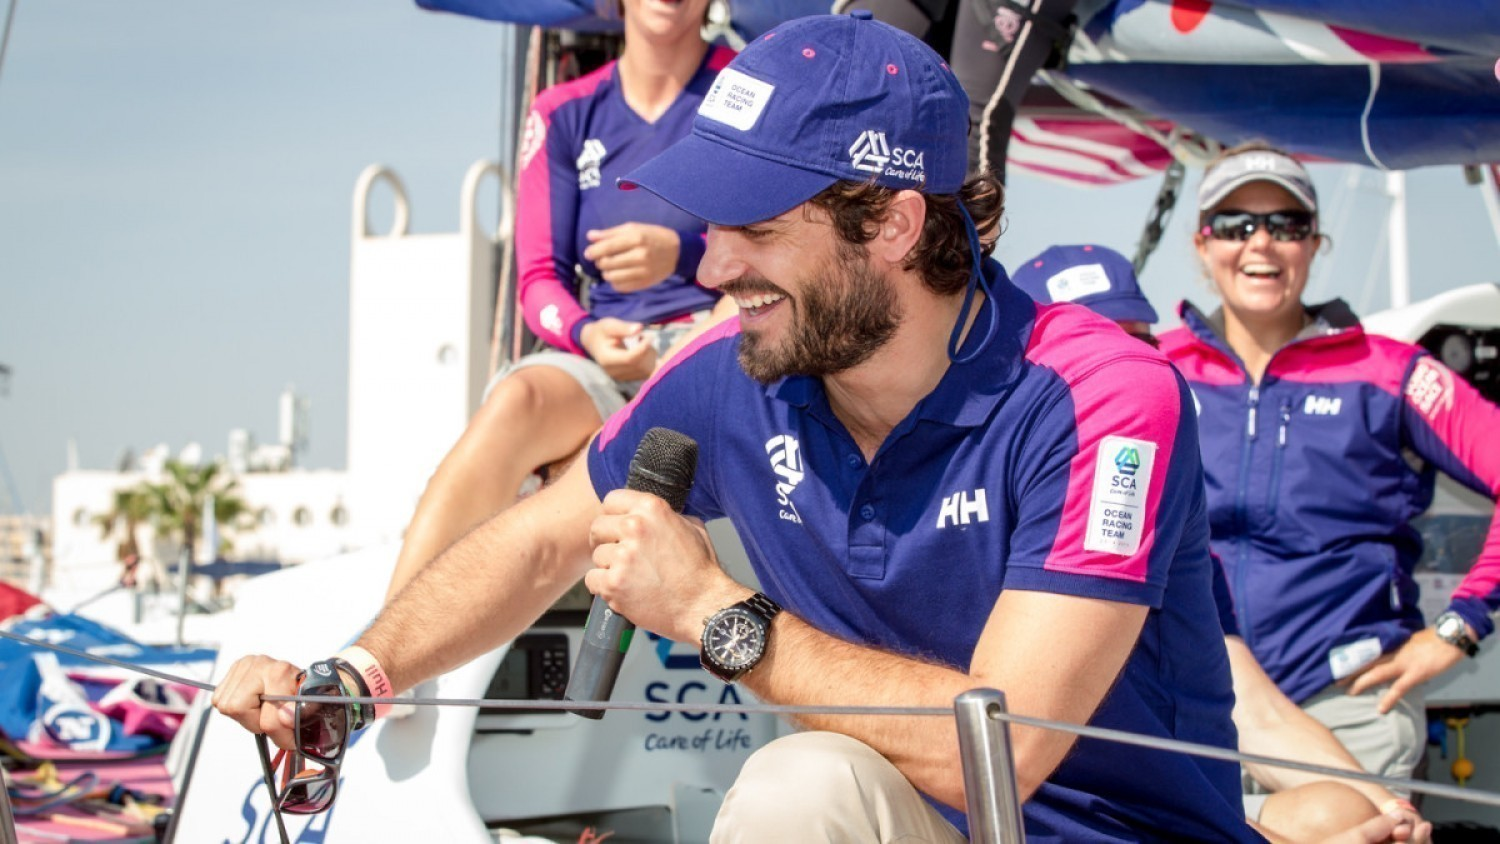 prince-carl-philip_racing_extreme-sports--w=1500.jpg